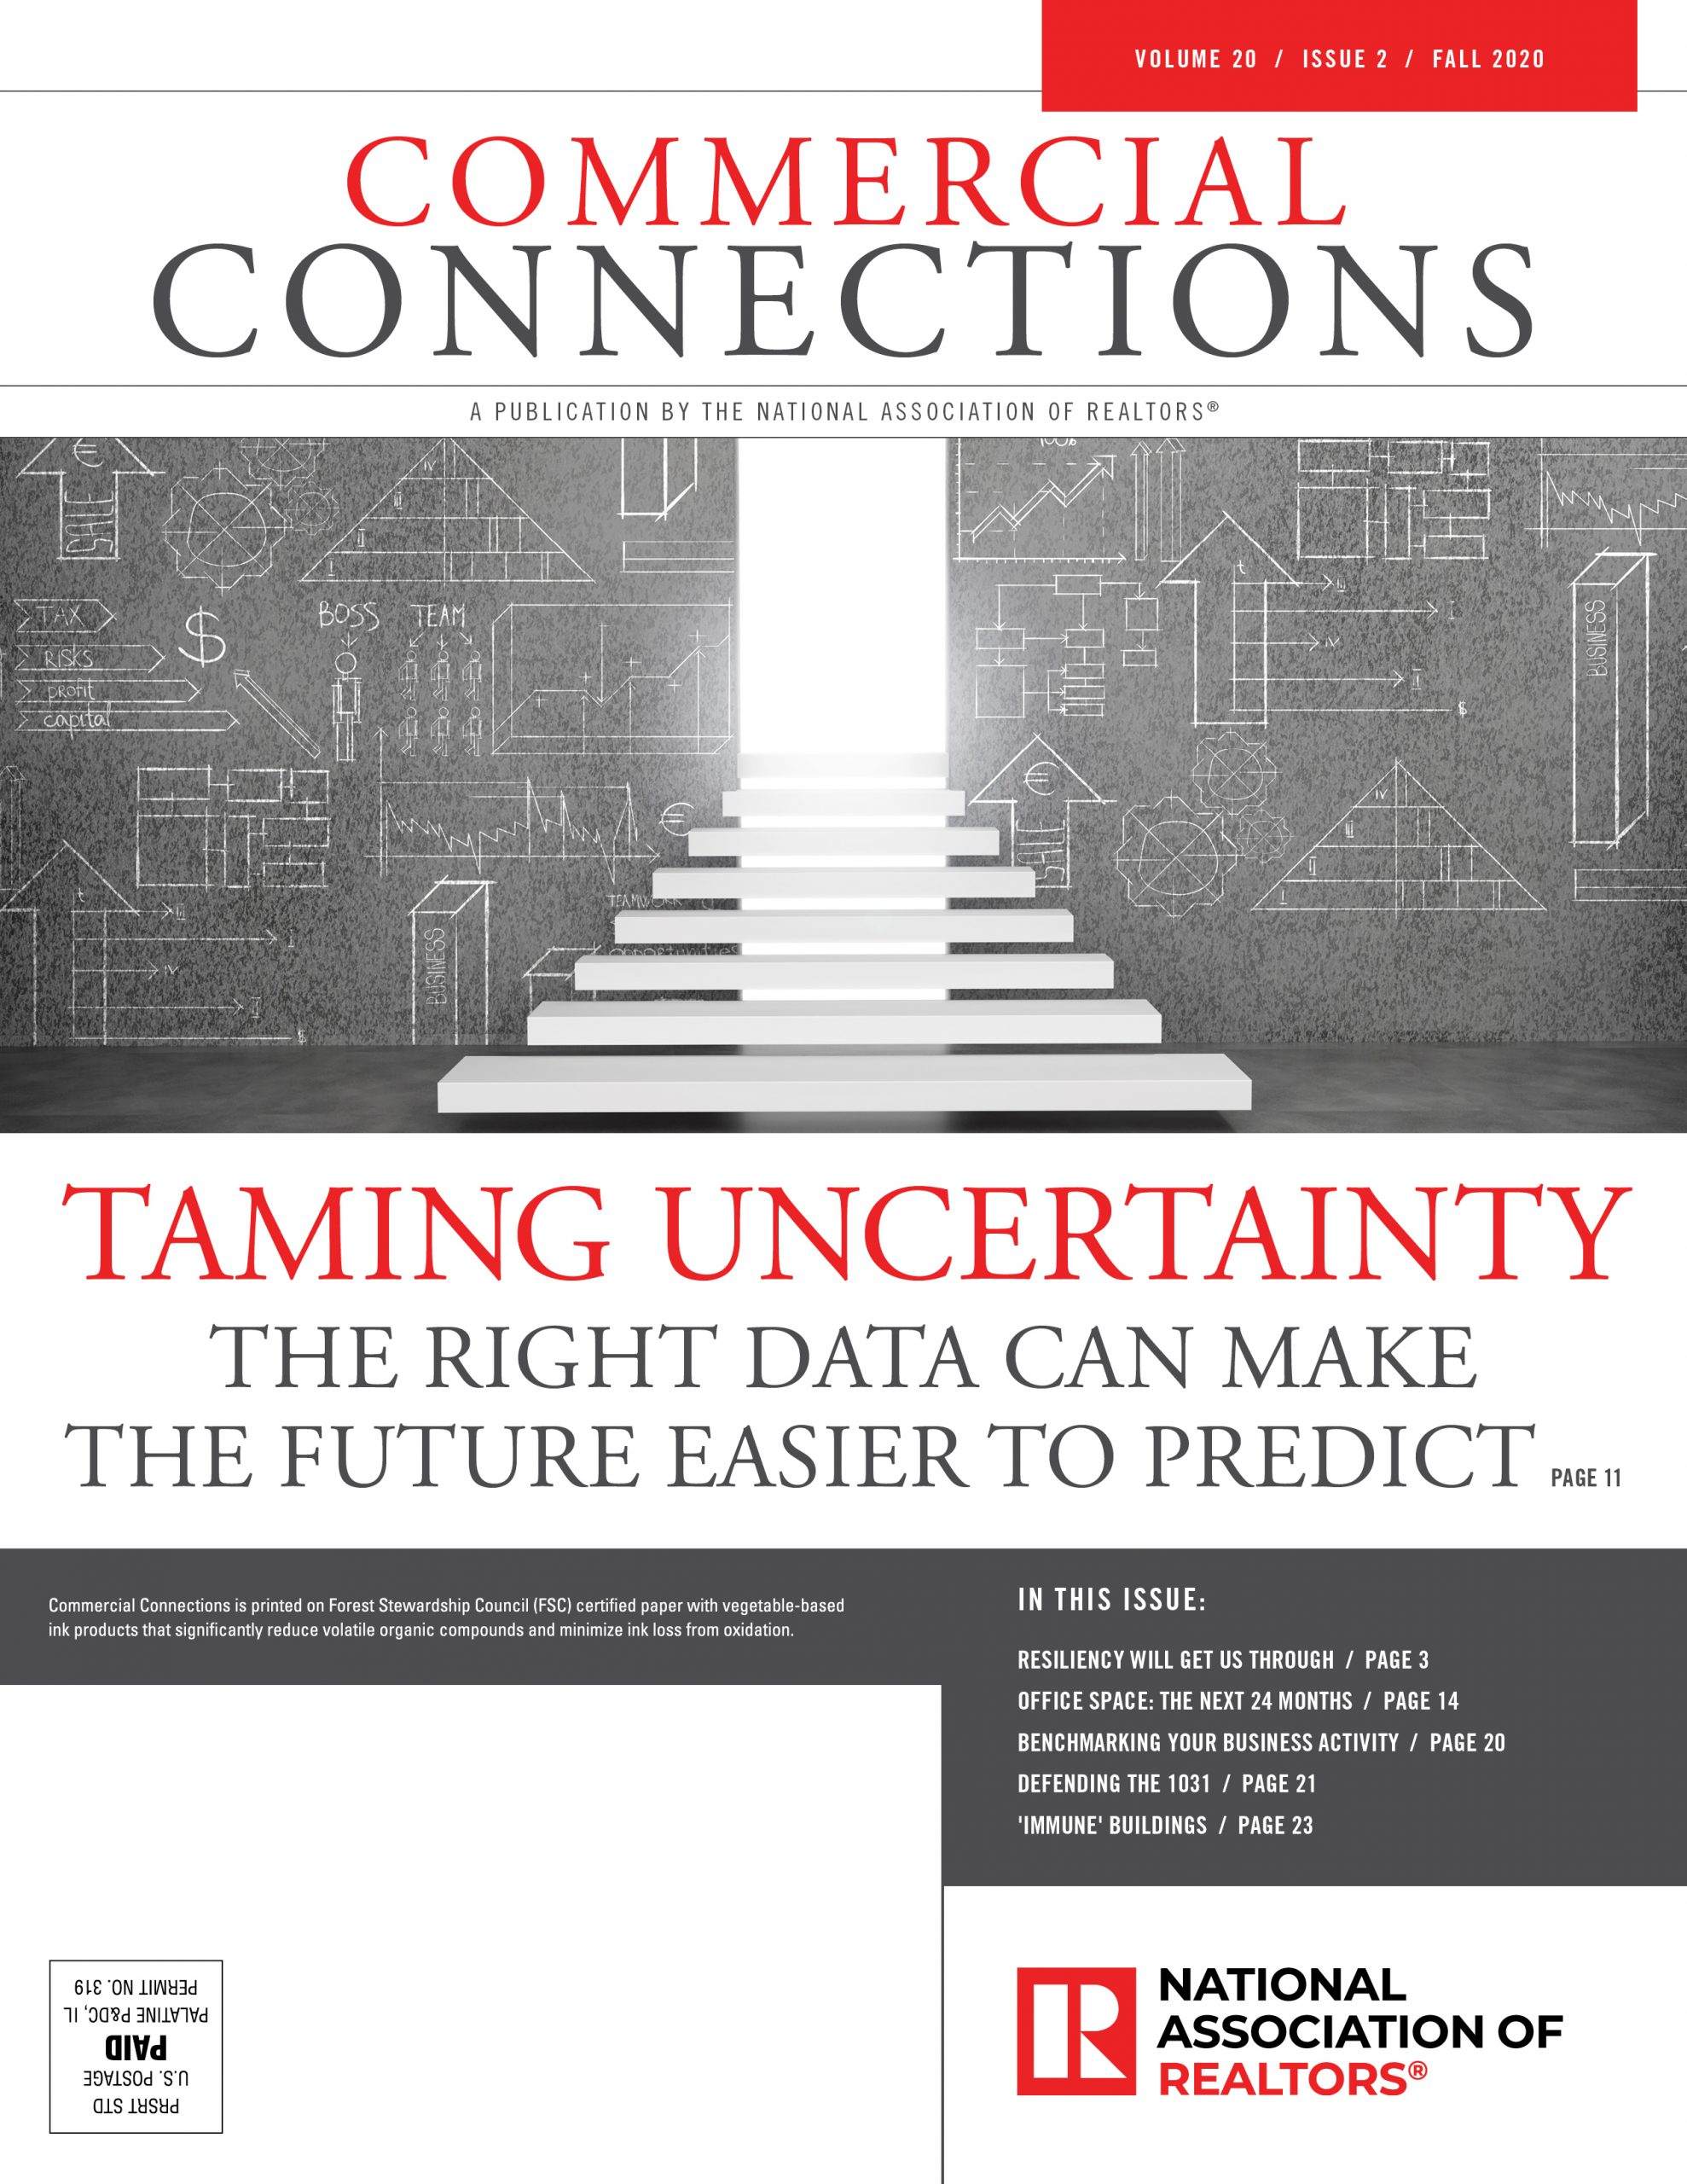 Fall 2020: Taming Uncertainty